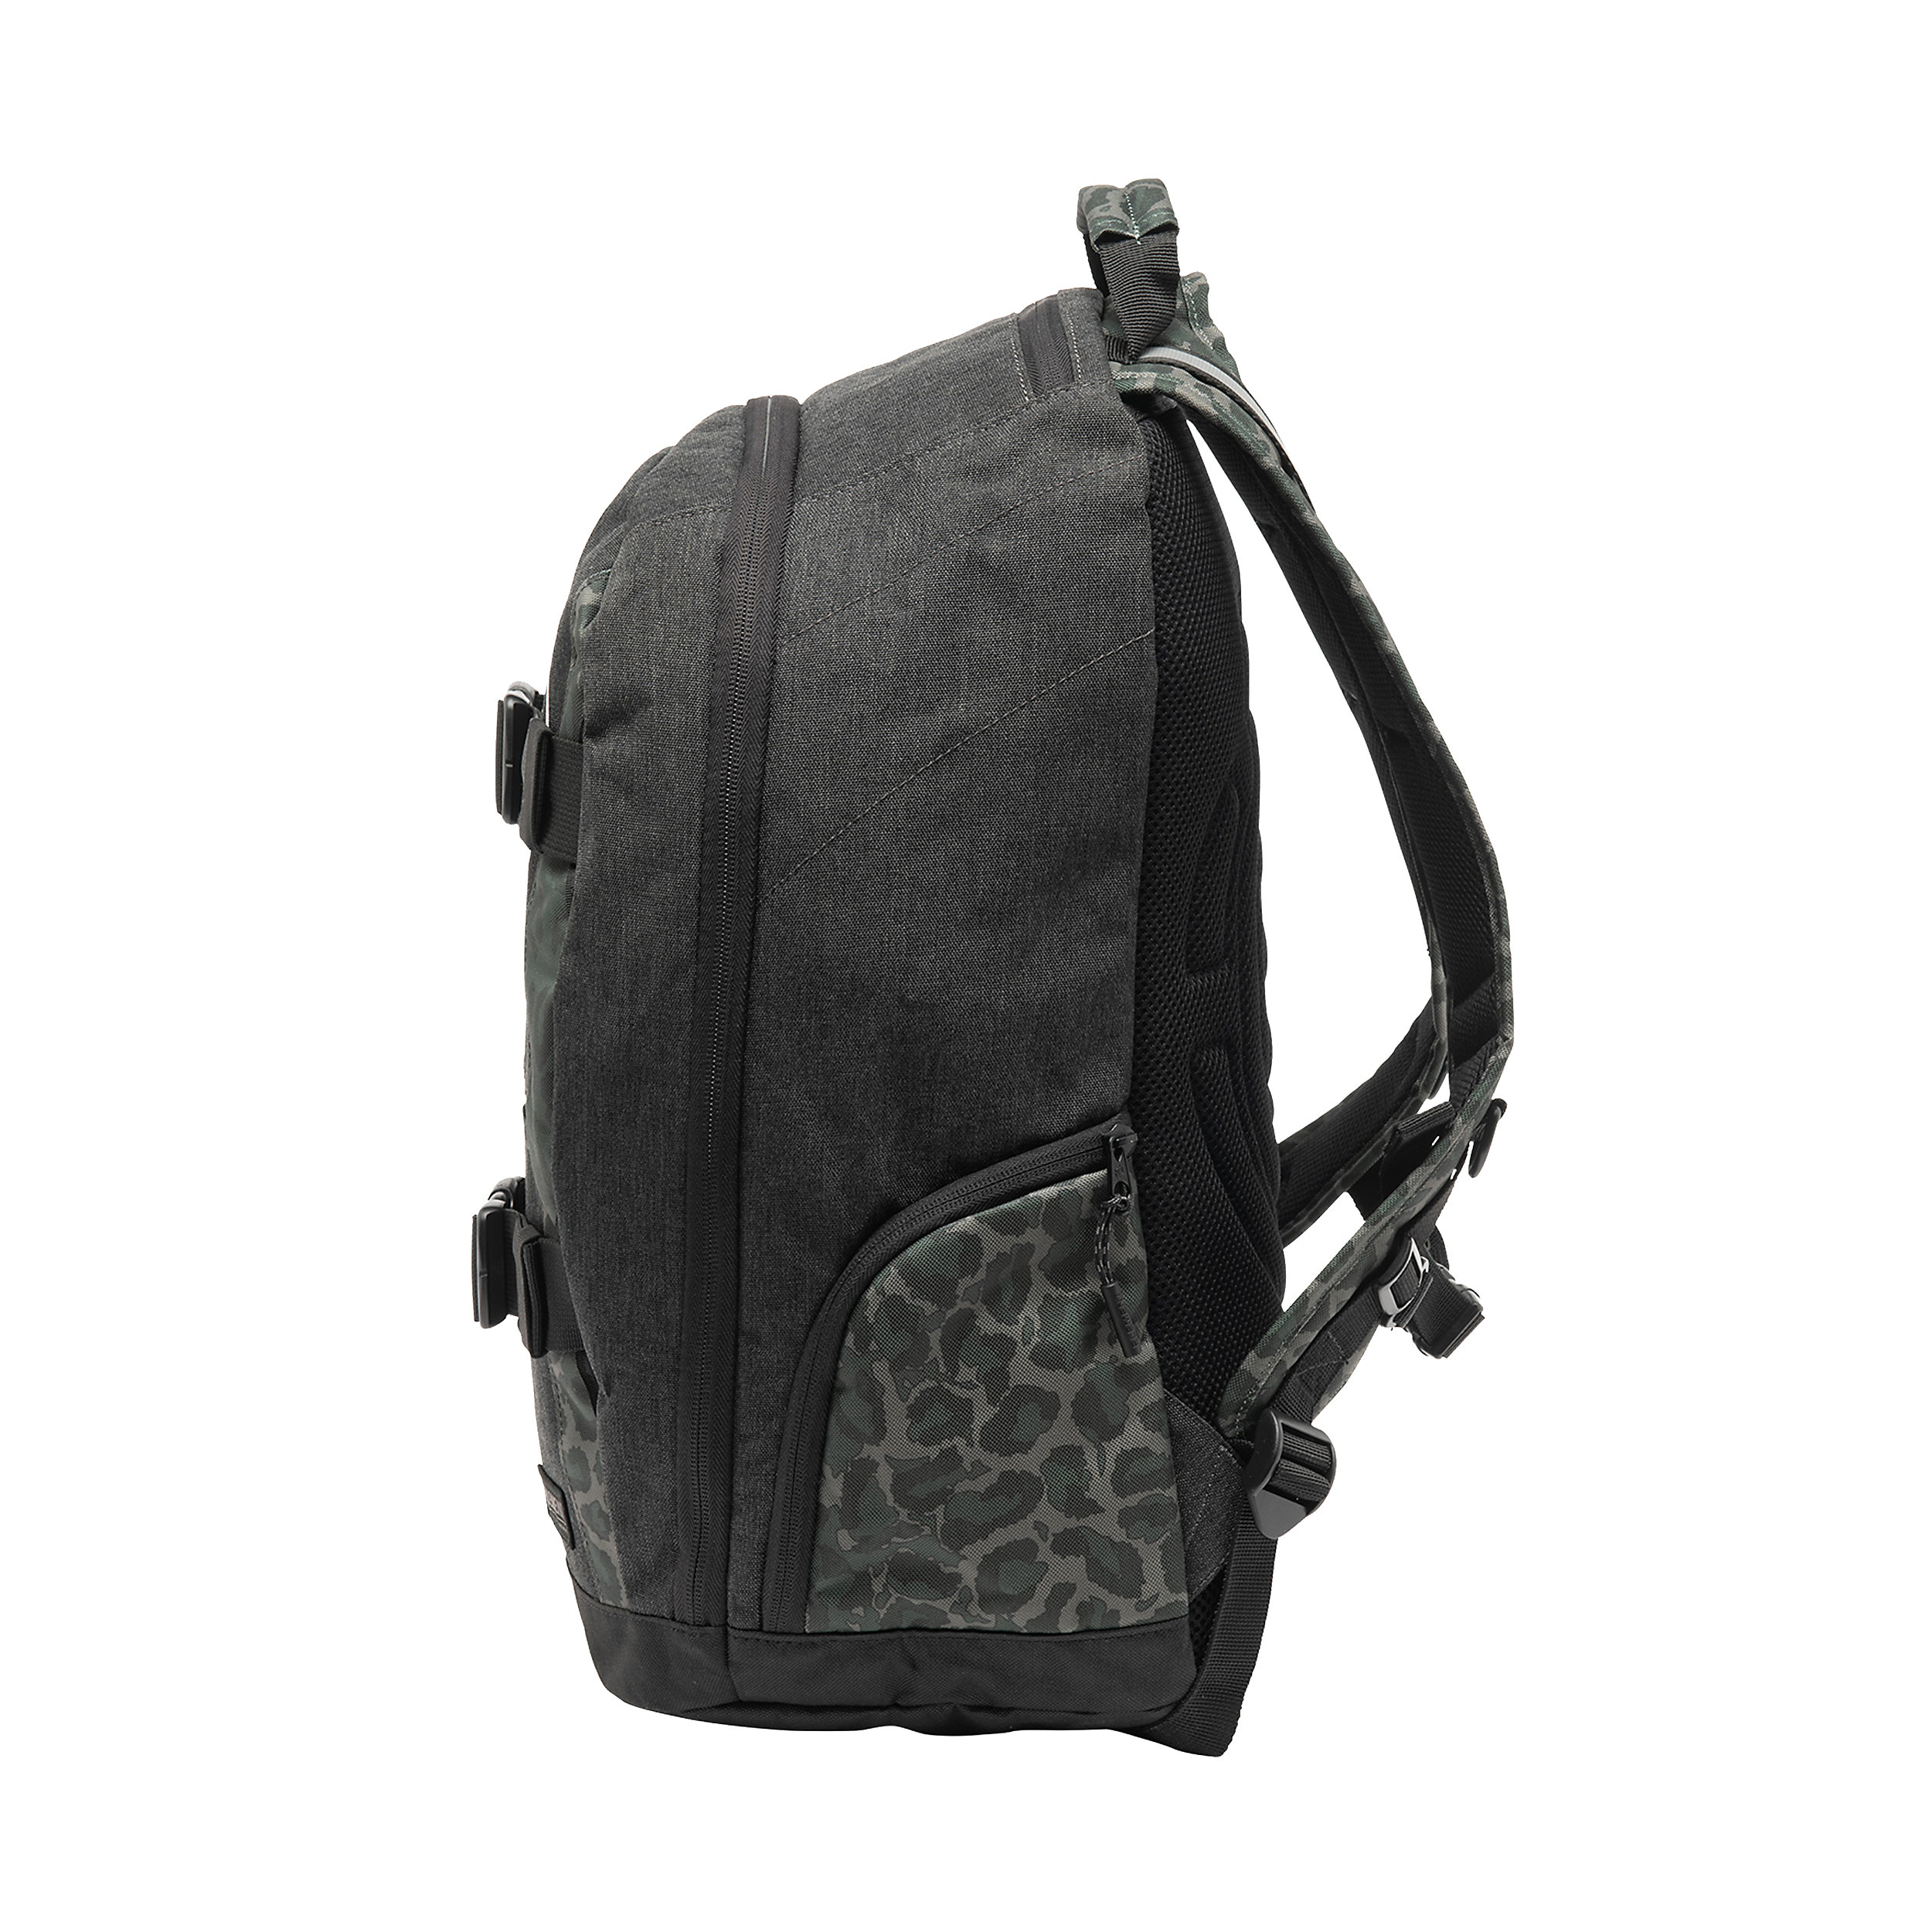 Skater Backpack Mohave BPK A 15 Inch  Season 2020 Camp Collection 30 Liter